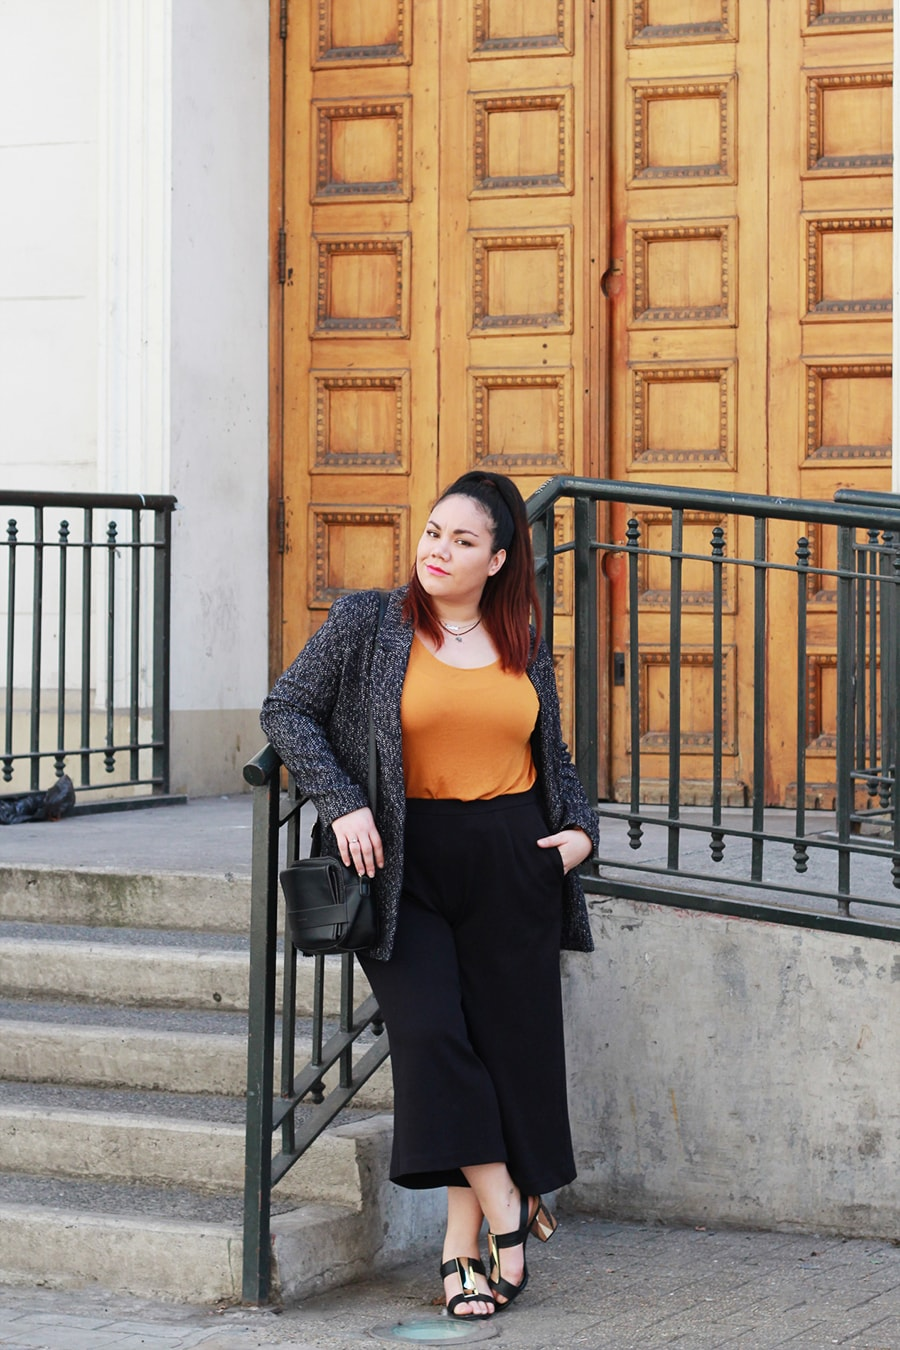 Culottes and mustard top - after office look | Golden Strokes